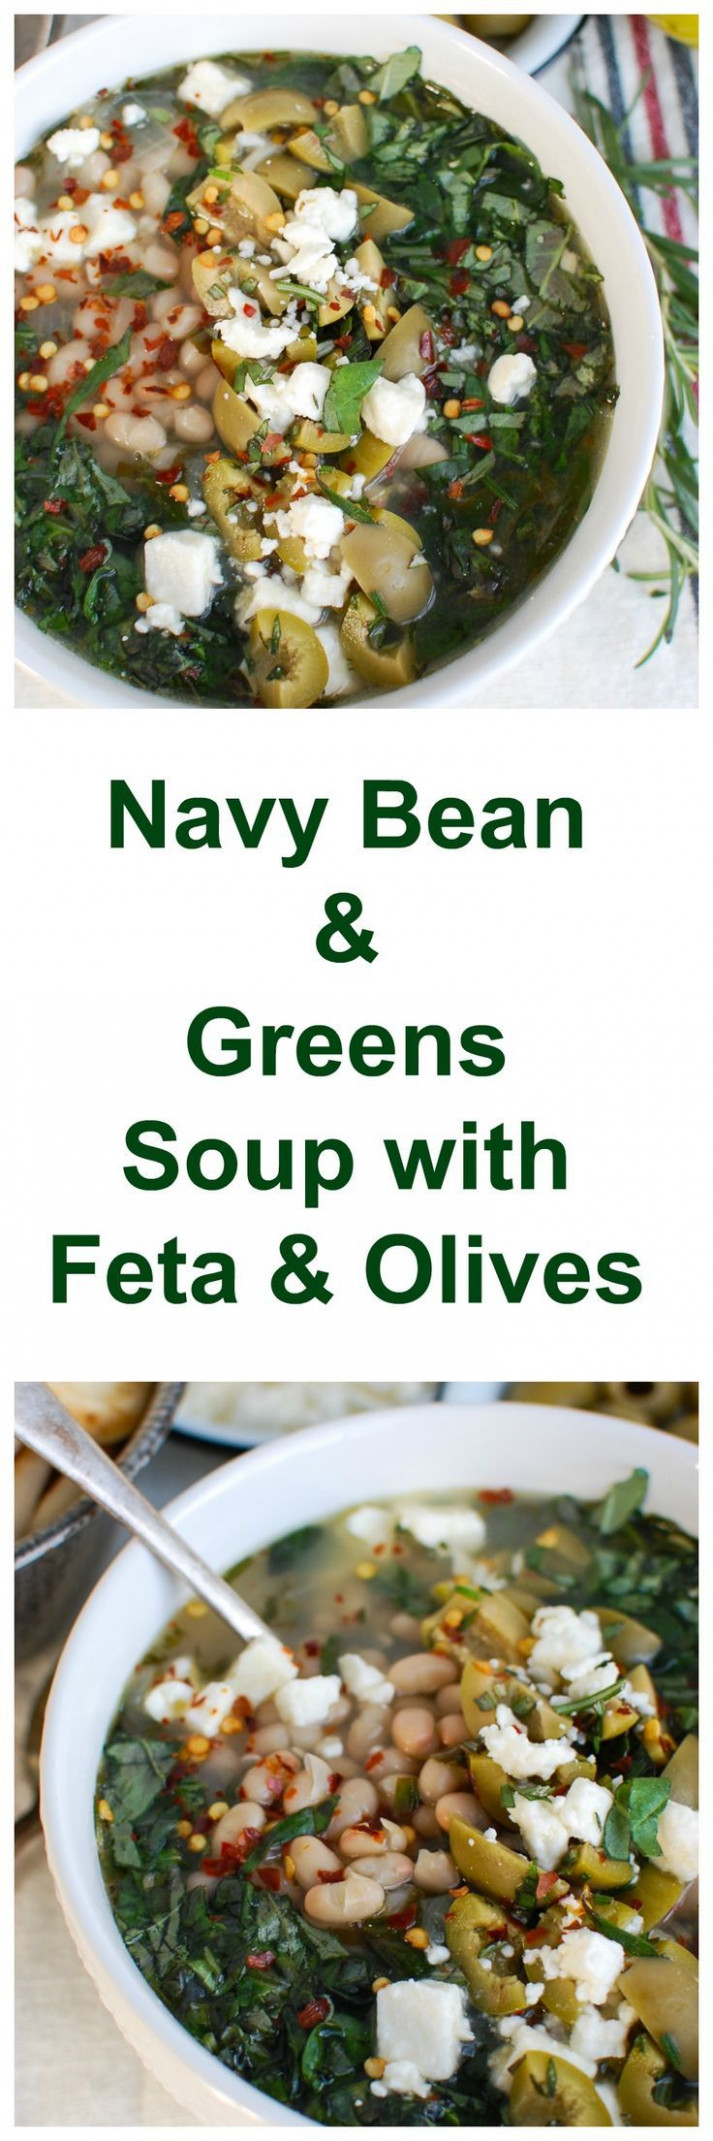 Navy Bean and Greens Soup with Feta and Olives | Recipe ...